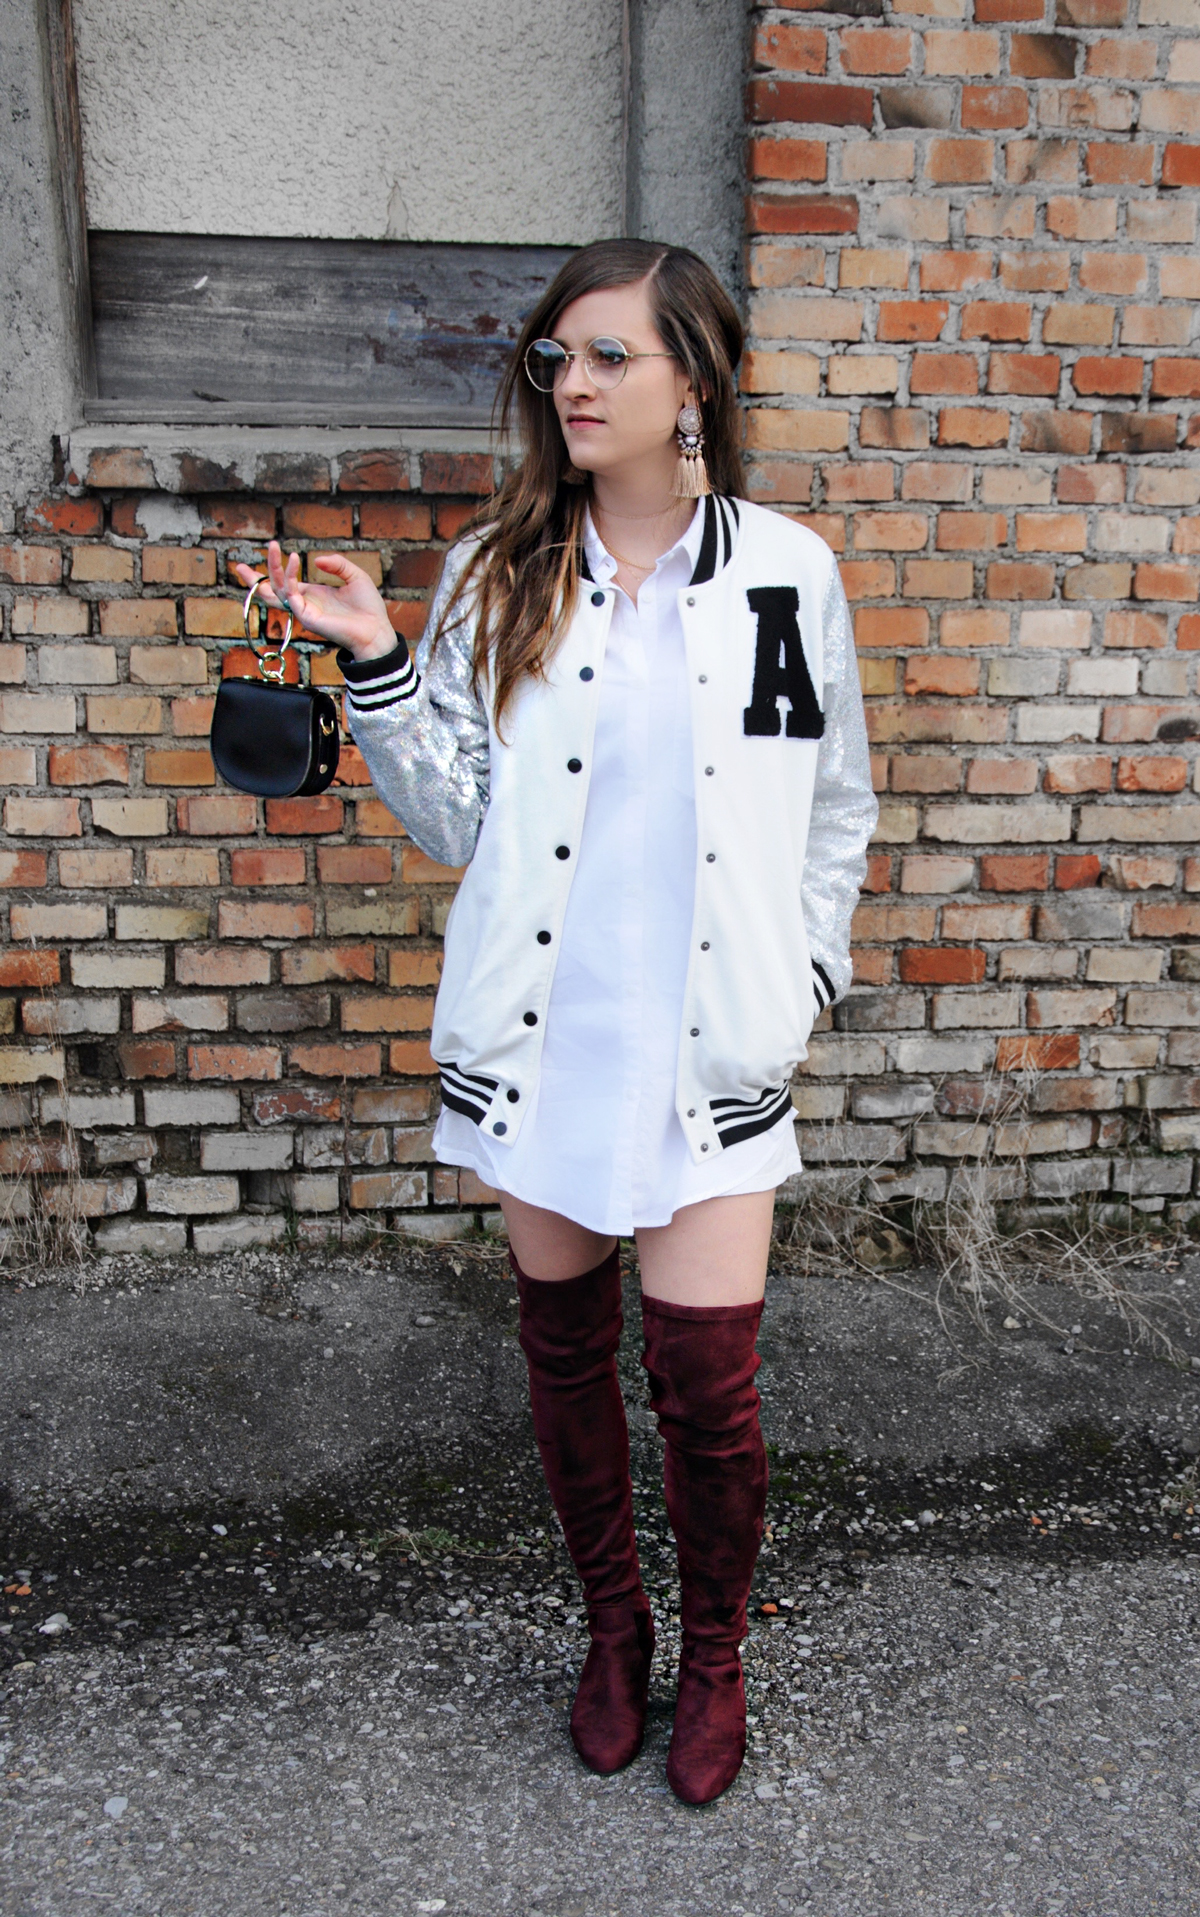 Swiss Fashion Blogger Andrea Steiner from Strawberries 'n' Champagne wearing a college jacket with overknees.